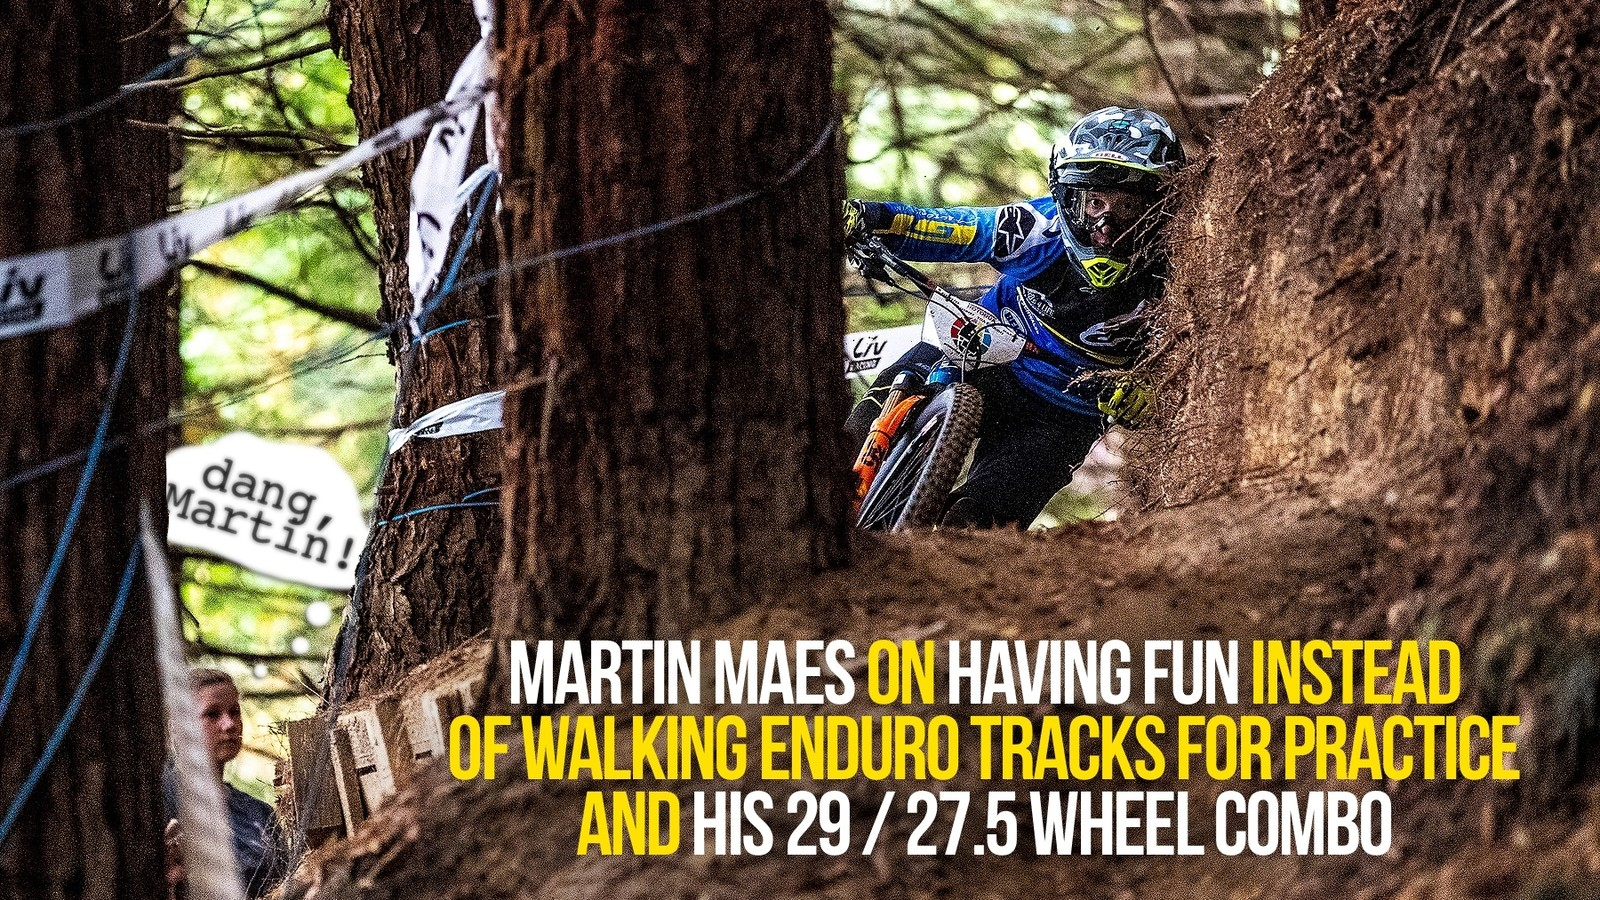 Martin Maes on Having Fun Instead of Walking Enduro Tracks for Practice and his 29 / 27.5 Wheel Combo